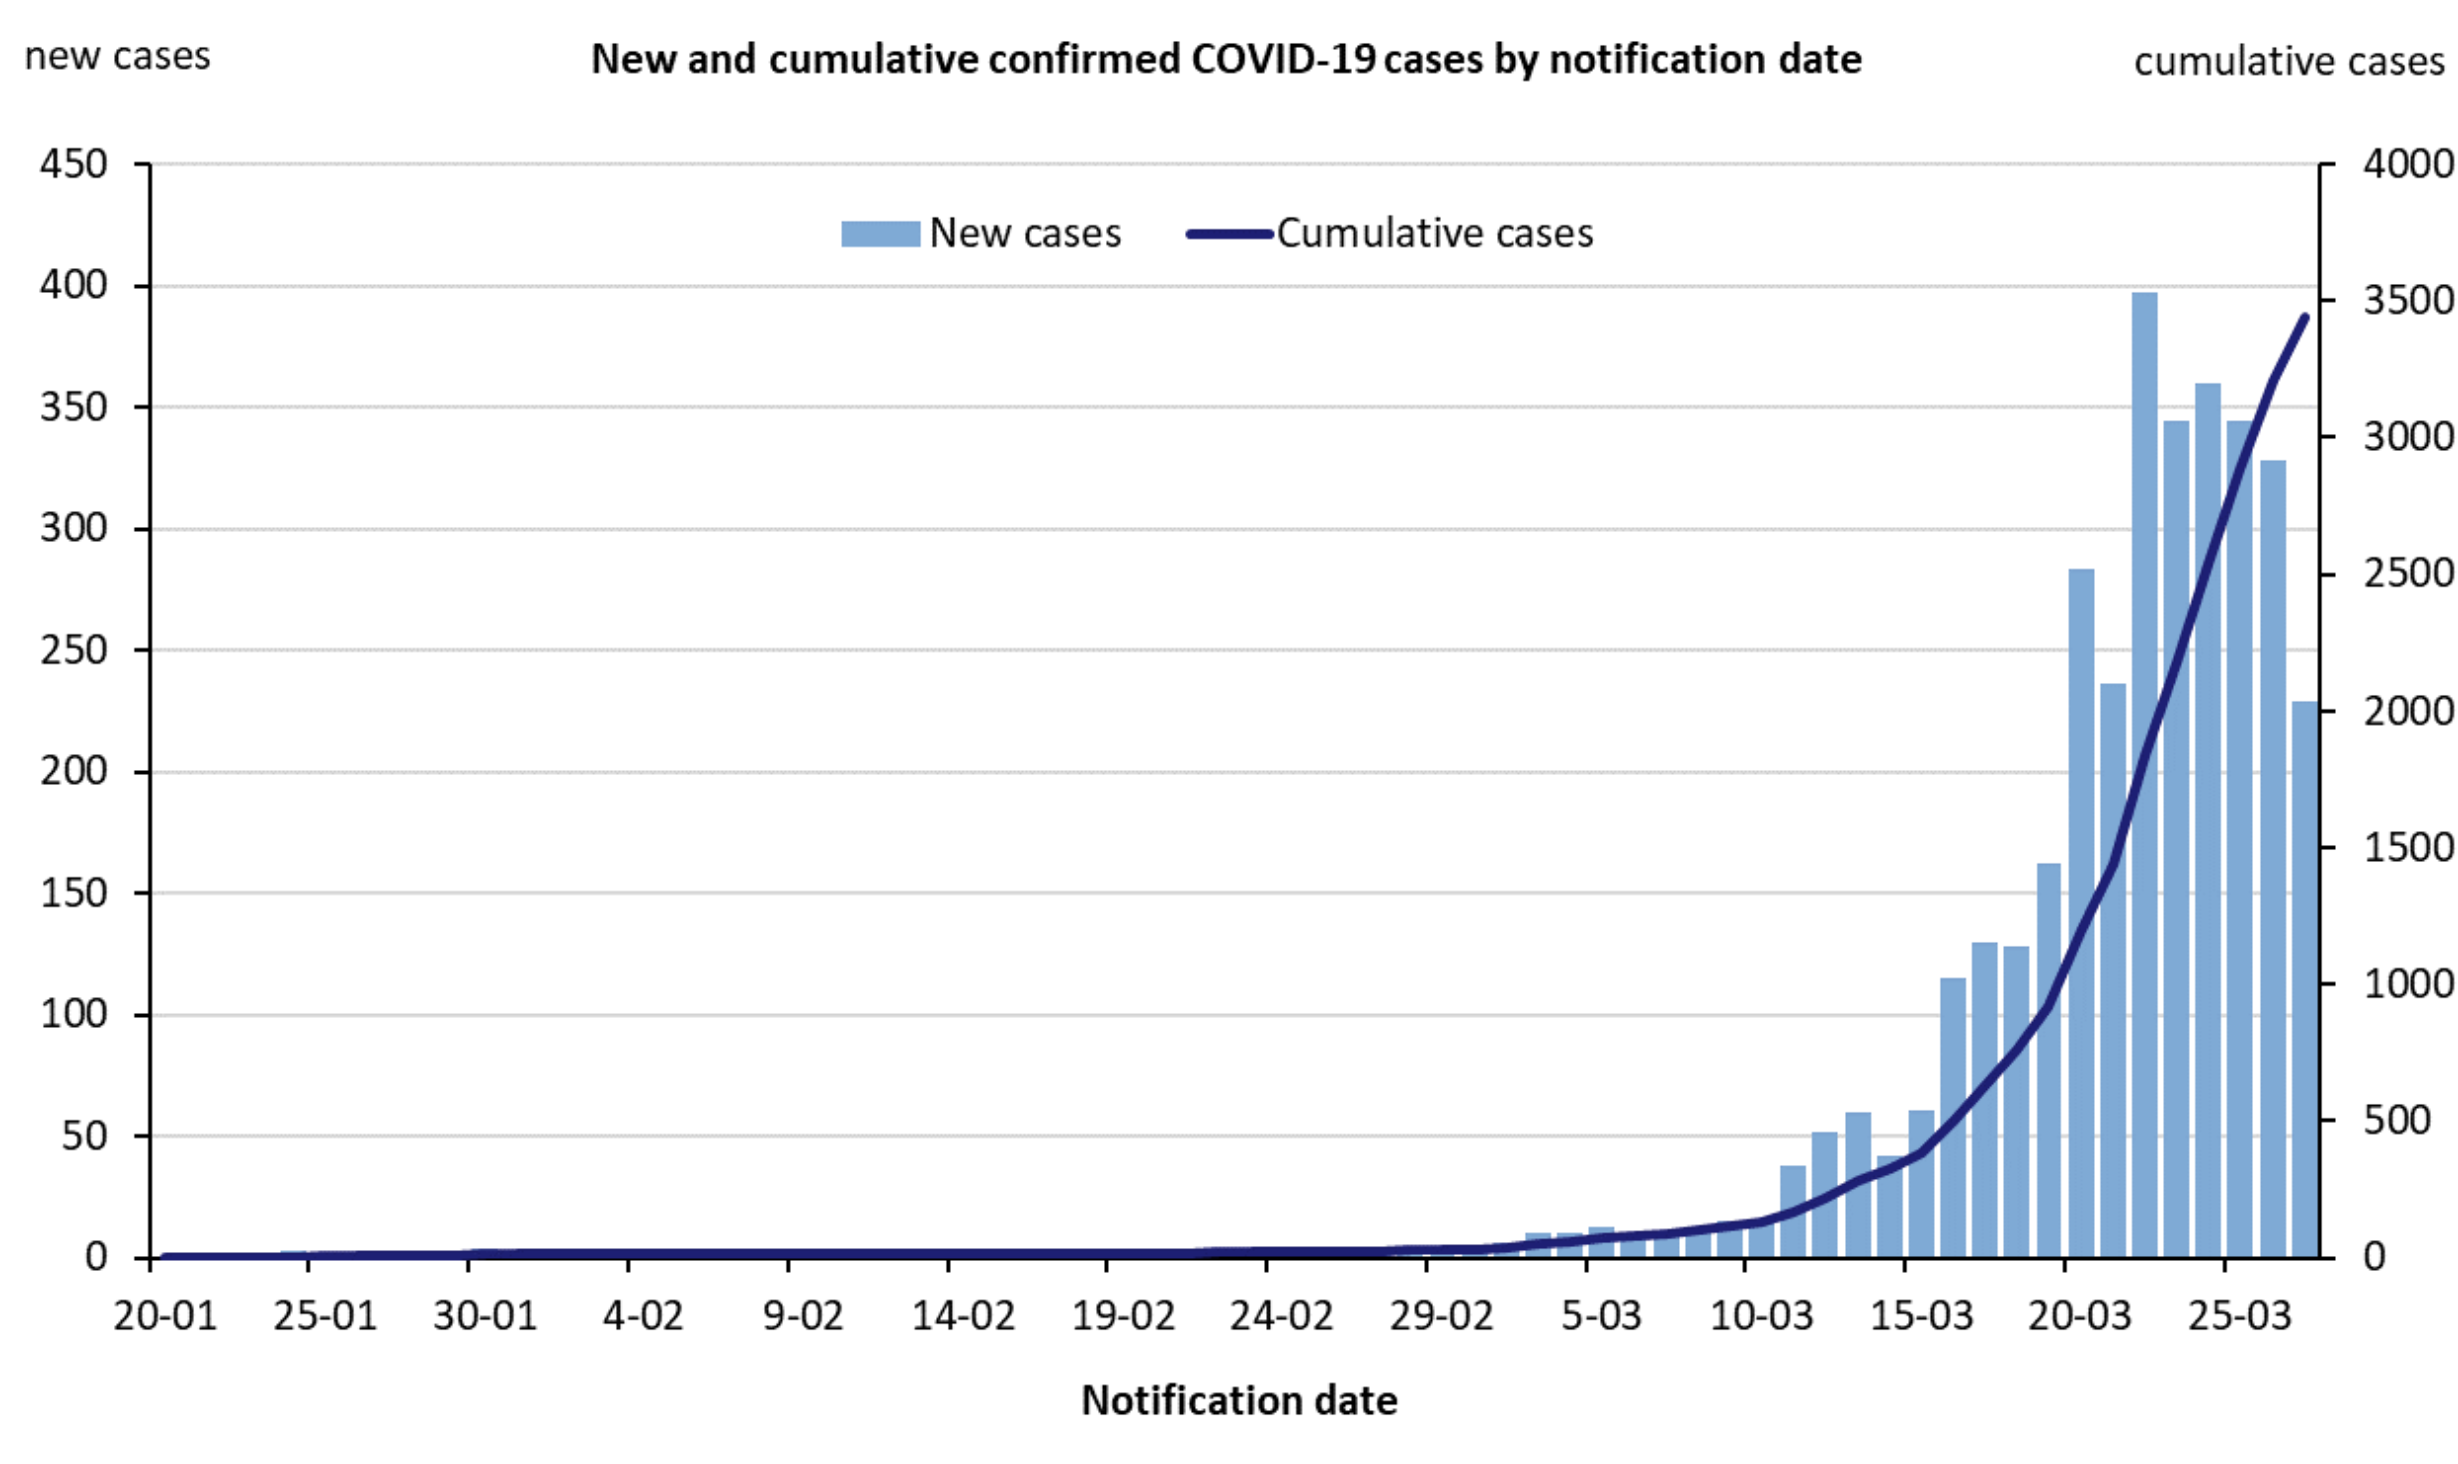 New and cumulative COVID-19 cases in Australia